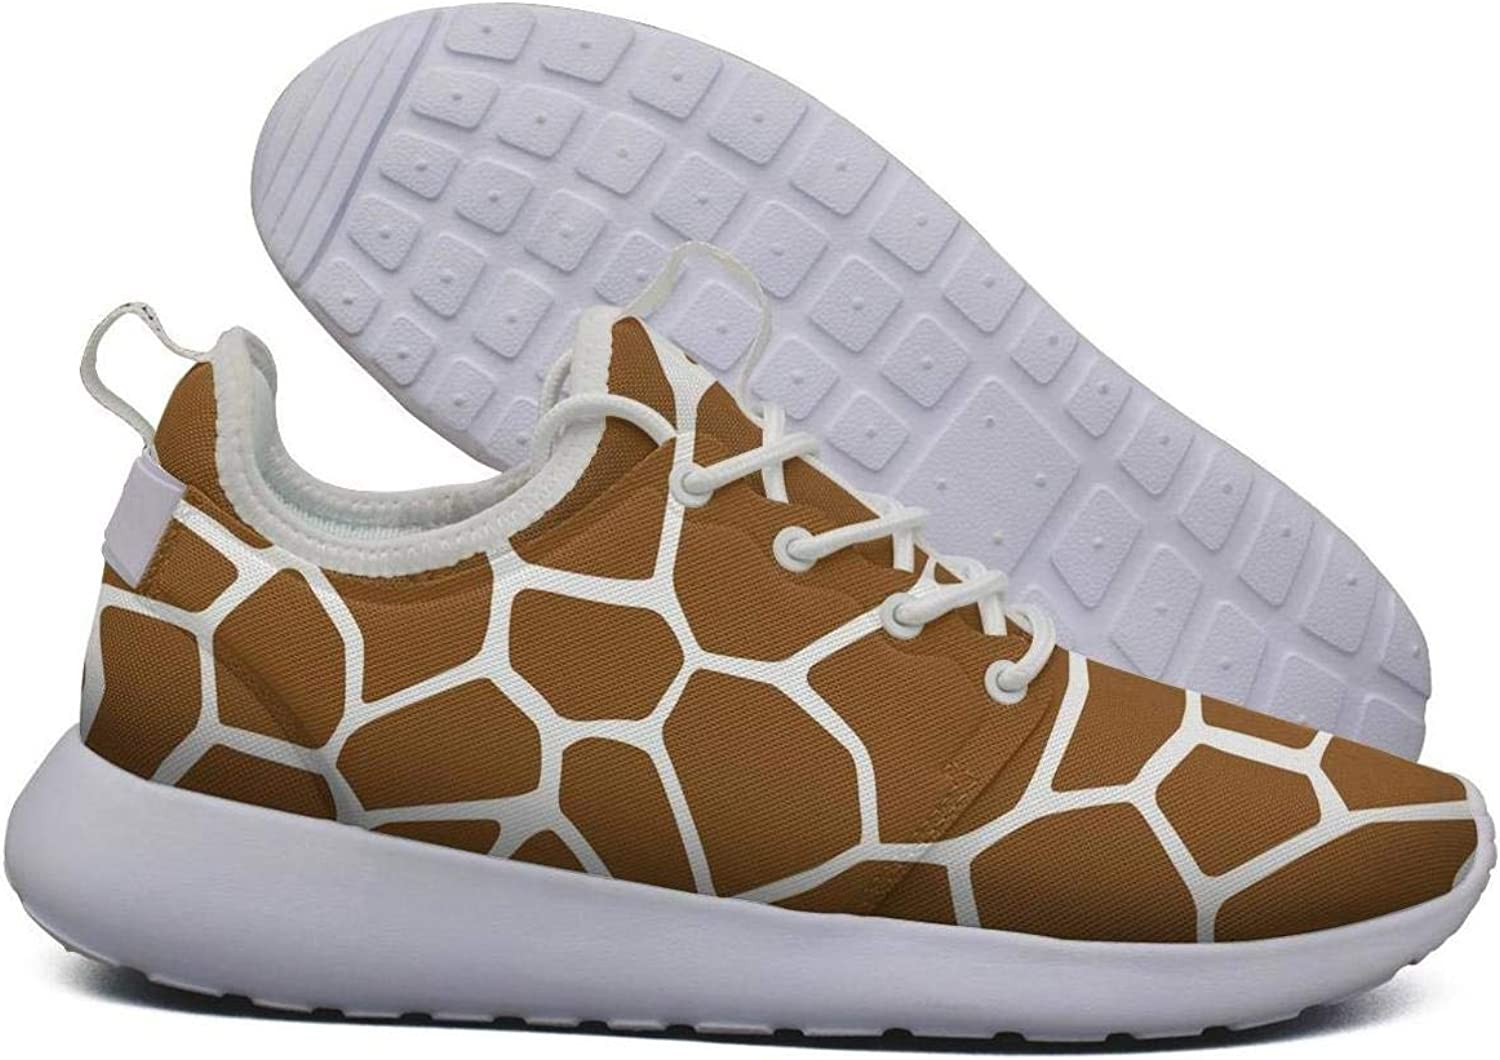 Hoohle Sports Womens Brown Giraffe Animal Skin Flex Mesh Roshe 2 Lightweight Beautiful Walking Jogging shoes